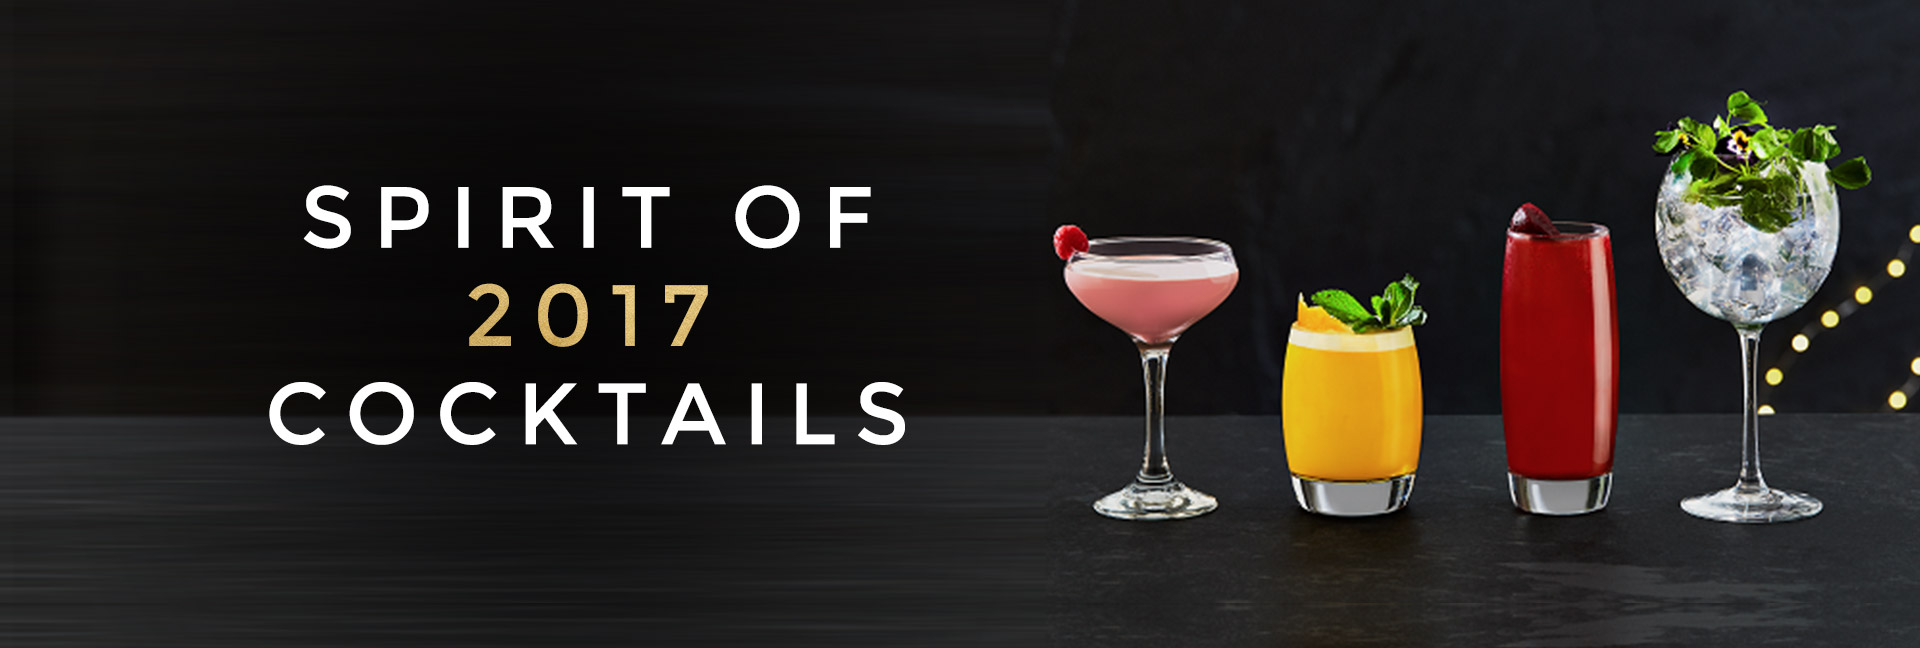 Spirit of 2017 cocktails at All Bar One Tower of London